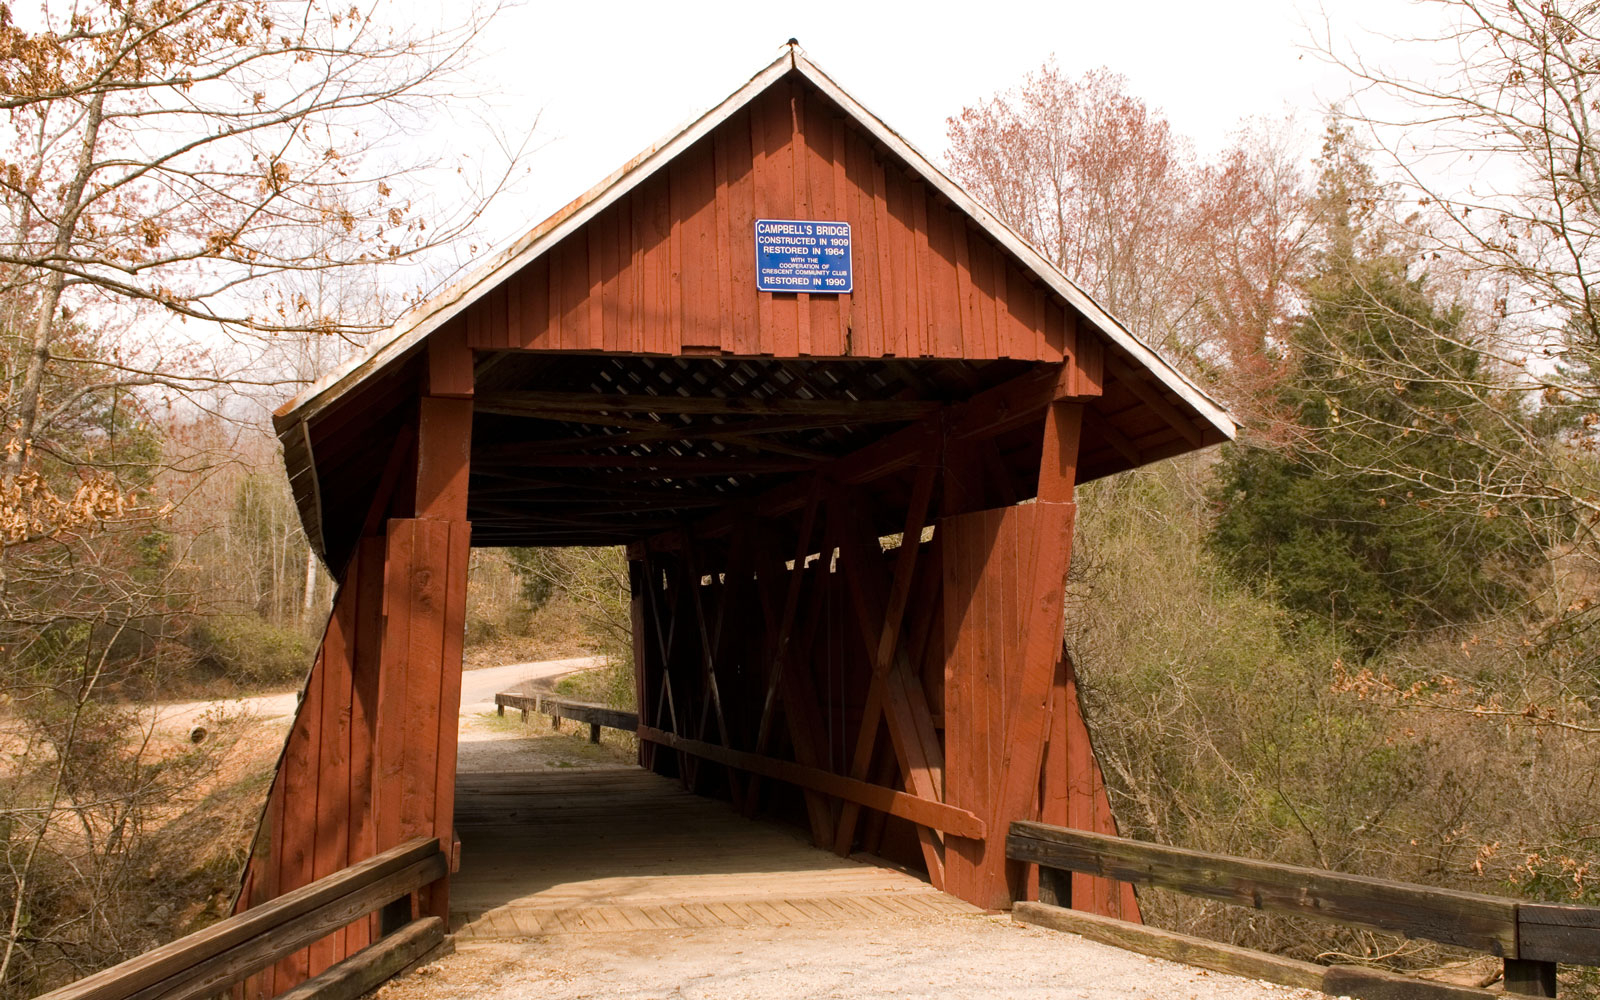 Campbells Bridge